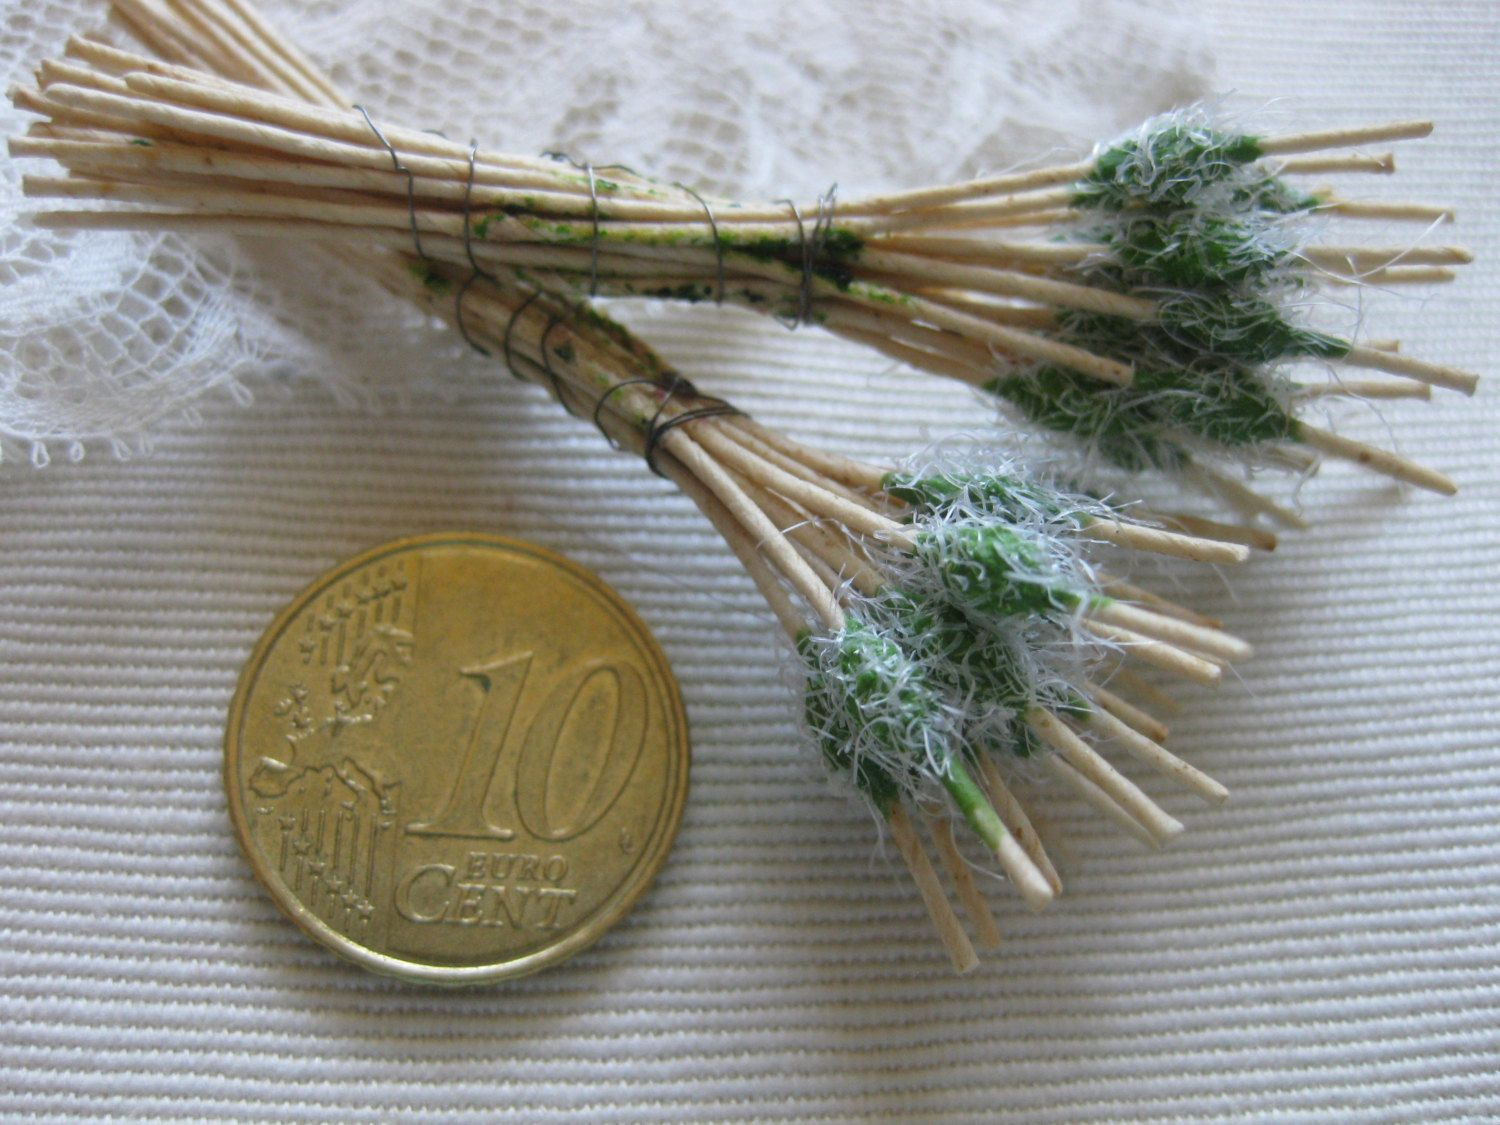 Vintage Millinery Stamens Hat Making Floristry Basketry Supply Hand Made French Silk Flowers Ribbon Doll Making Miniatures Craft 18Ps by MillineryJewellery on Etsy